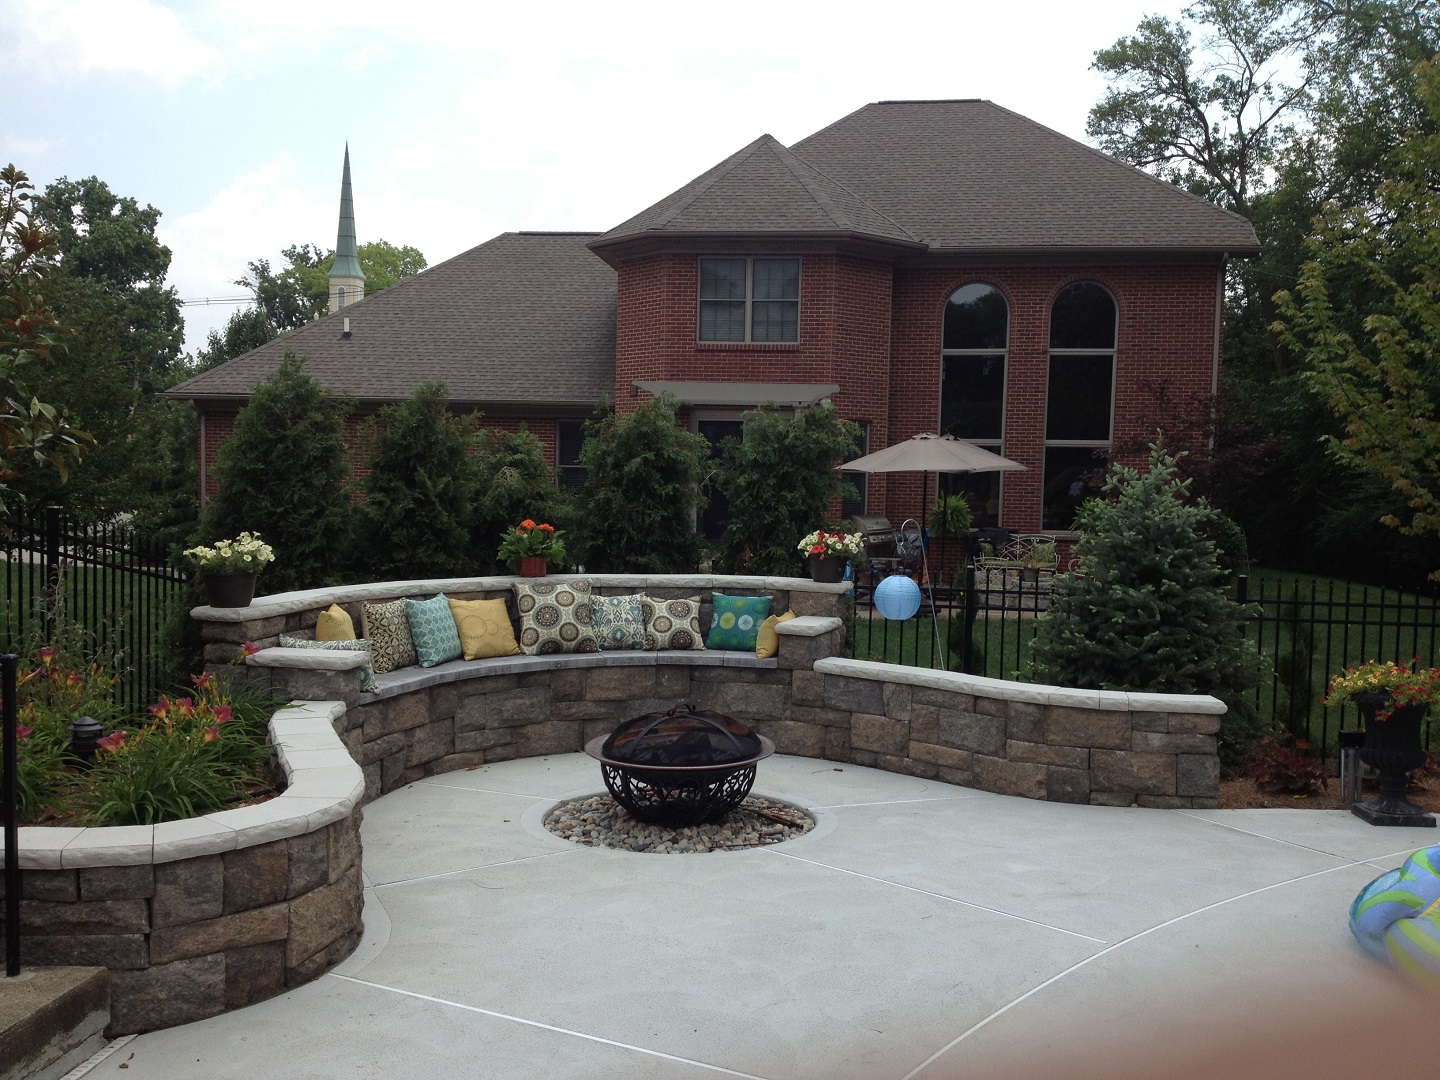 Retaining wall and pool patio in West Chester, OH